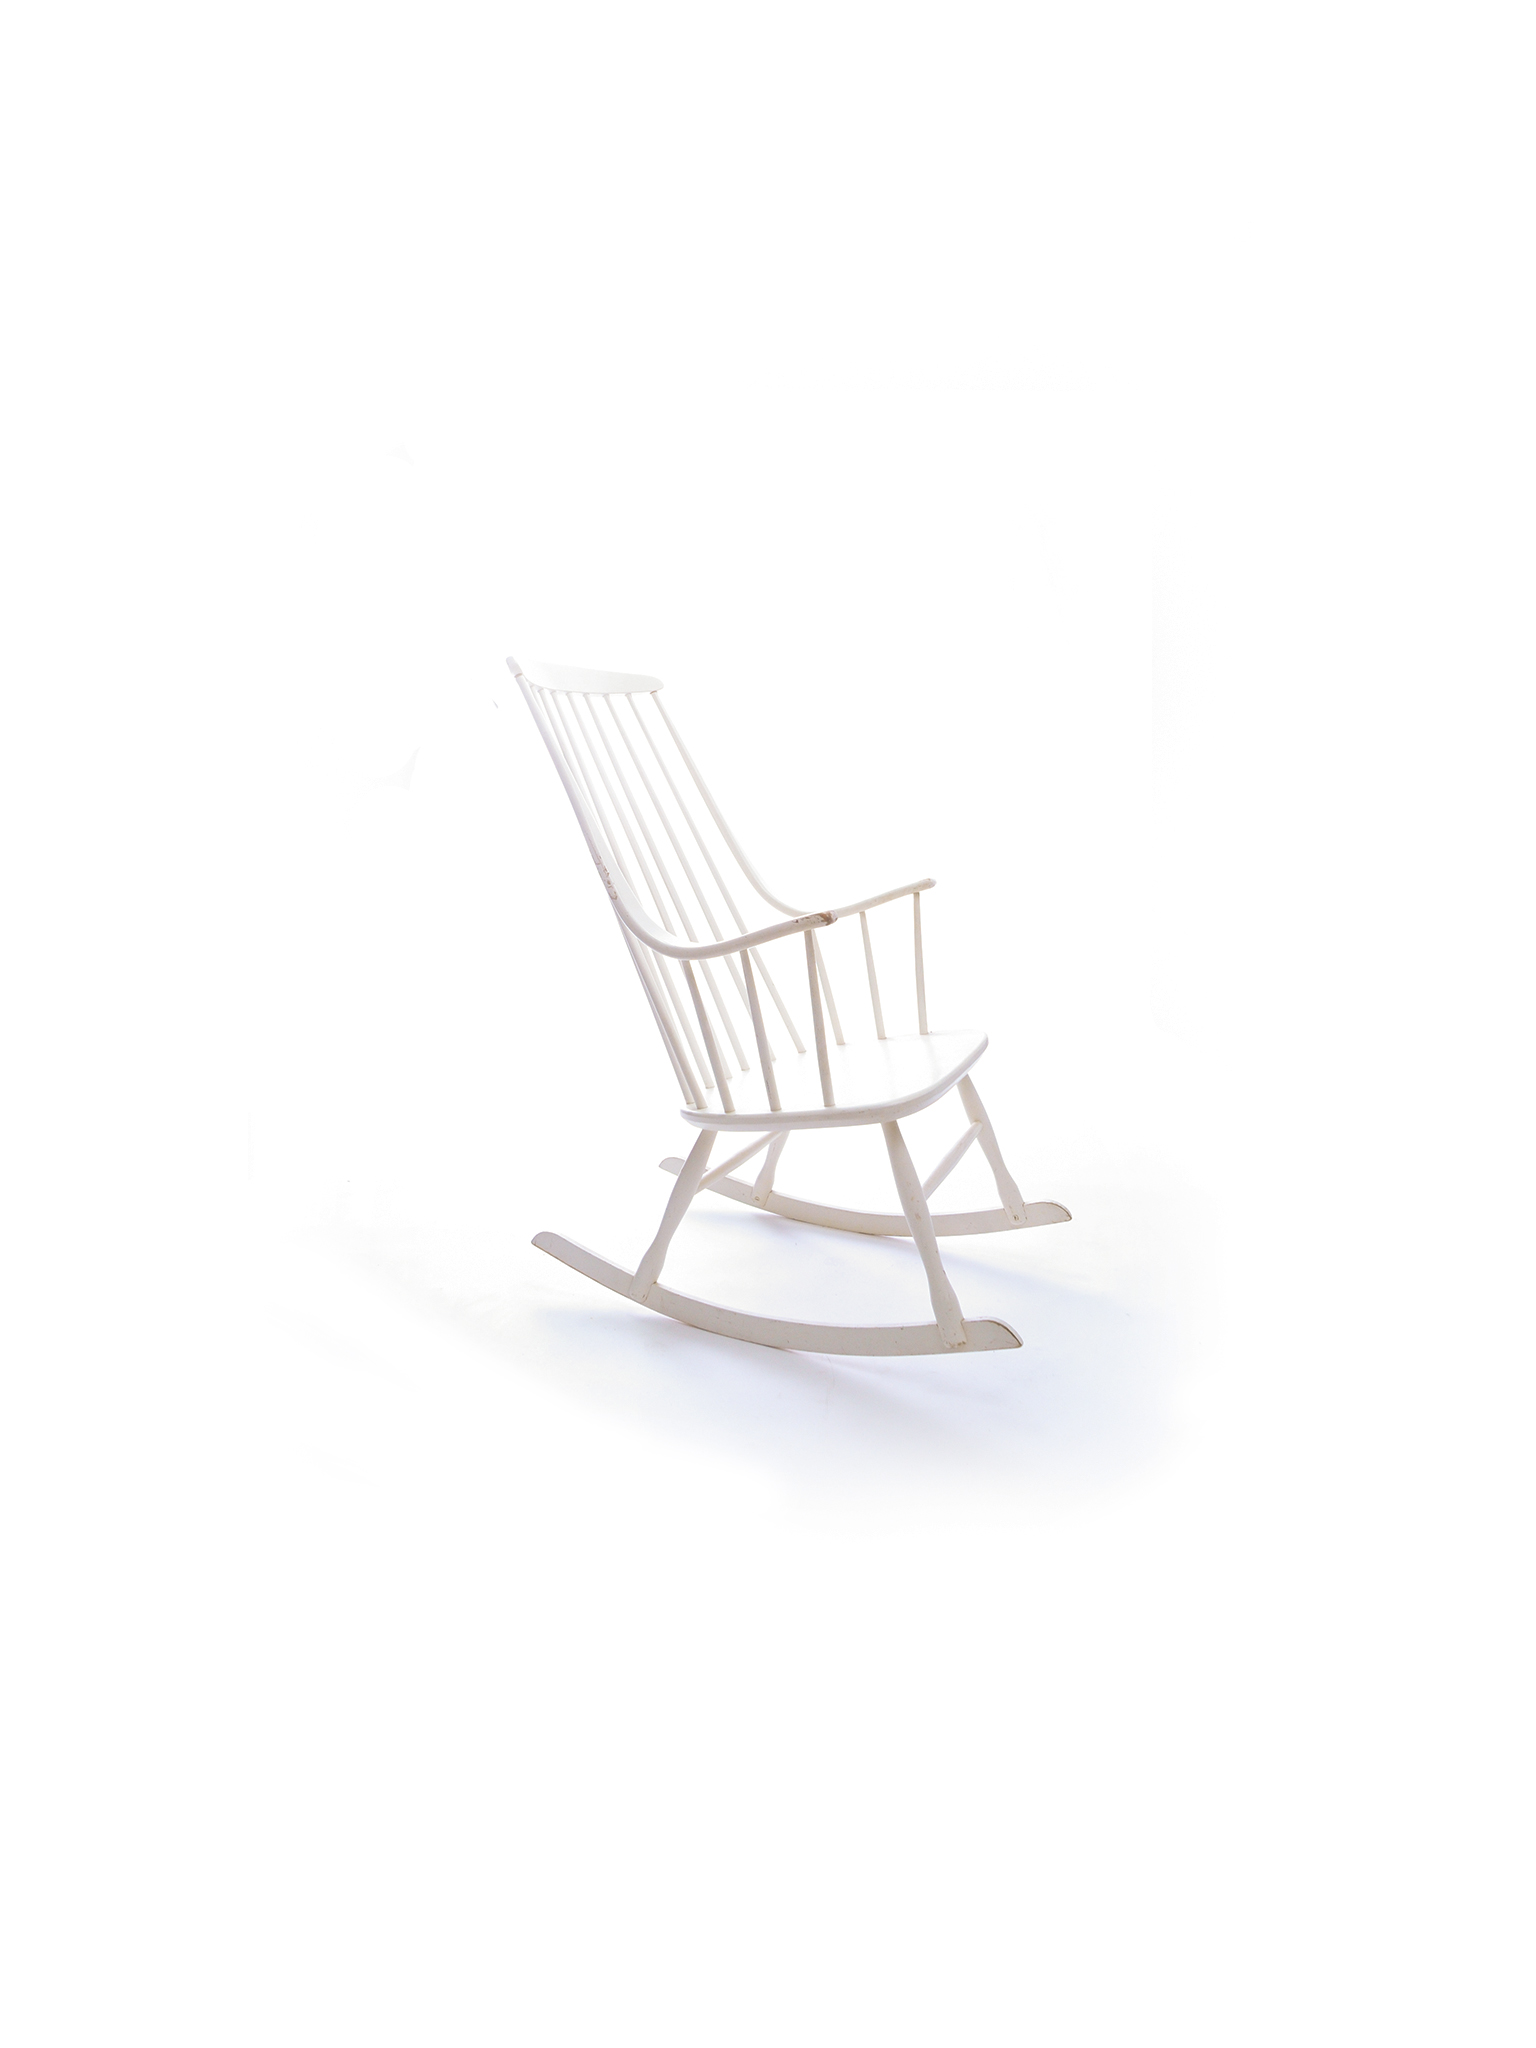 BOHEM 604 ROCKING CHAIR BY LENA LARSSON